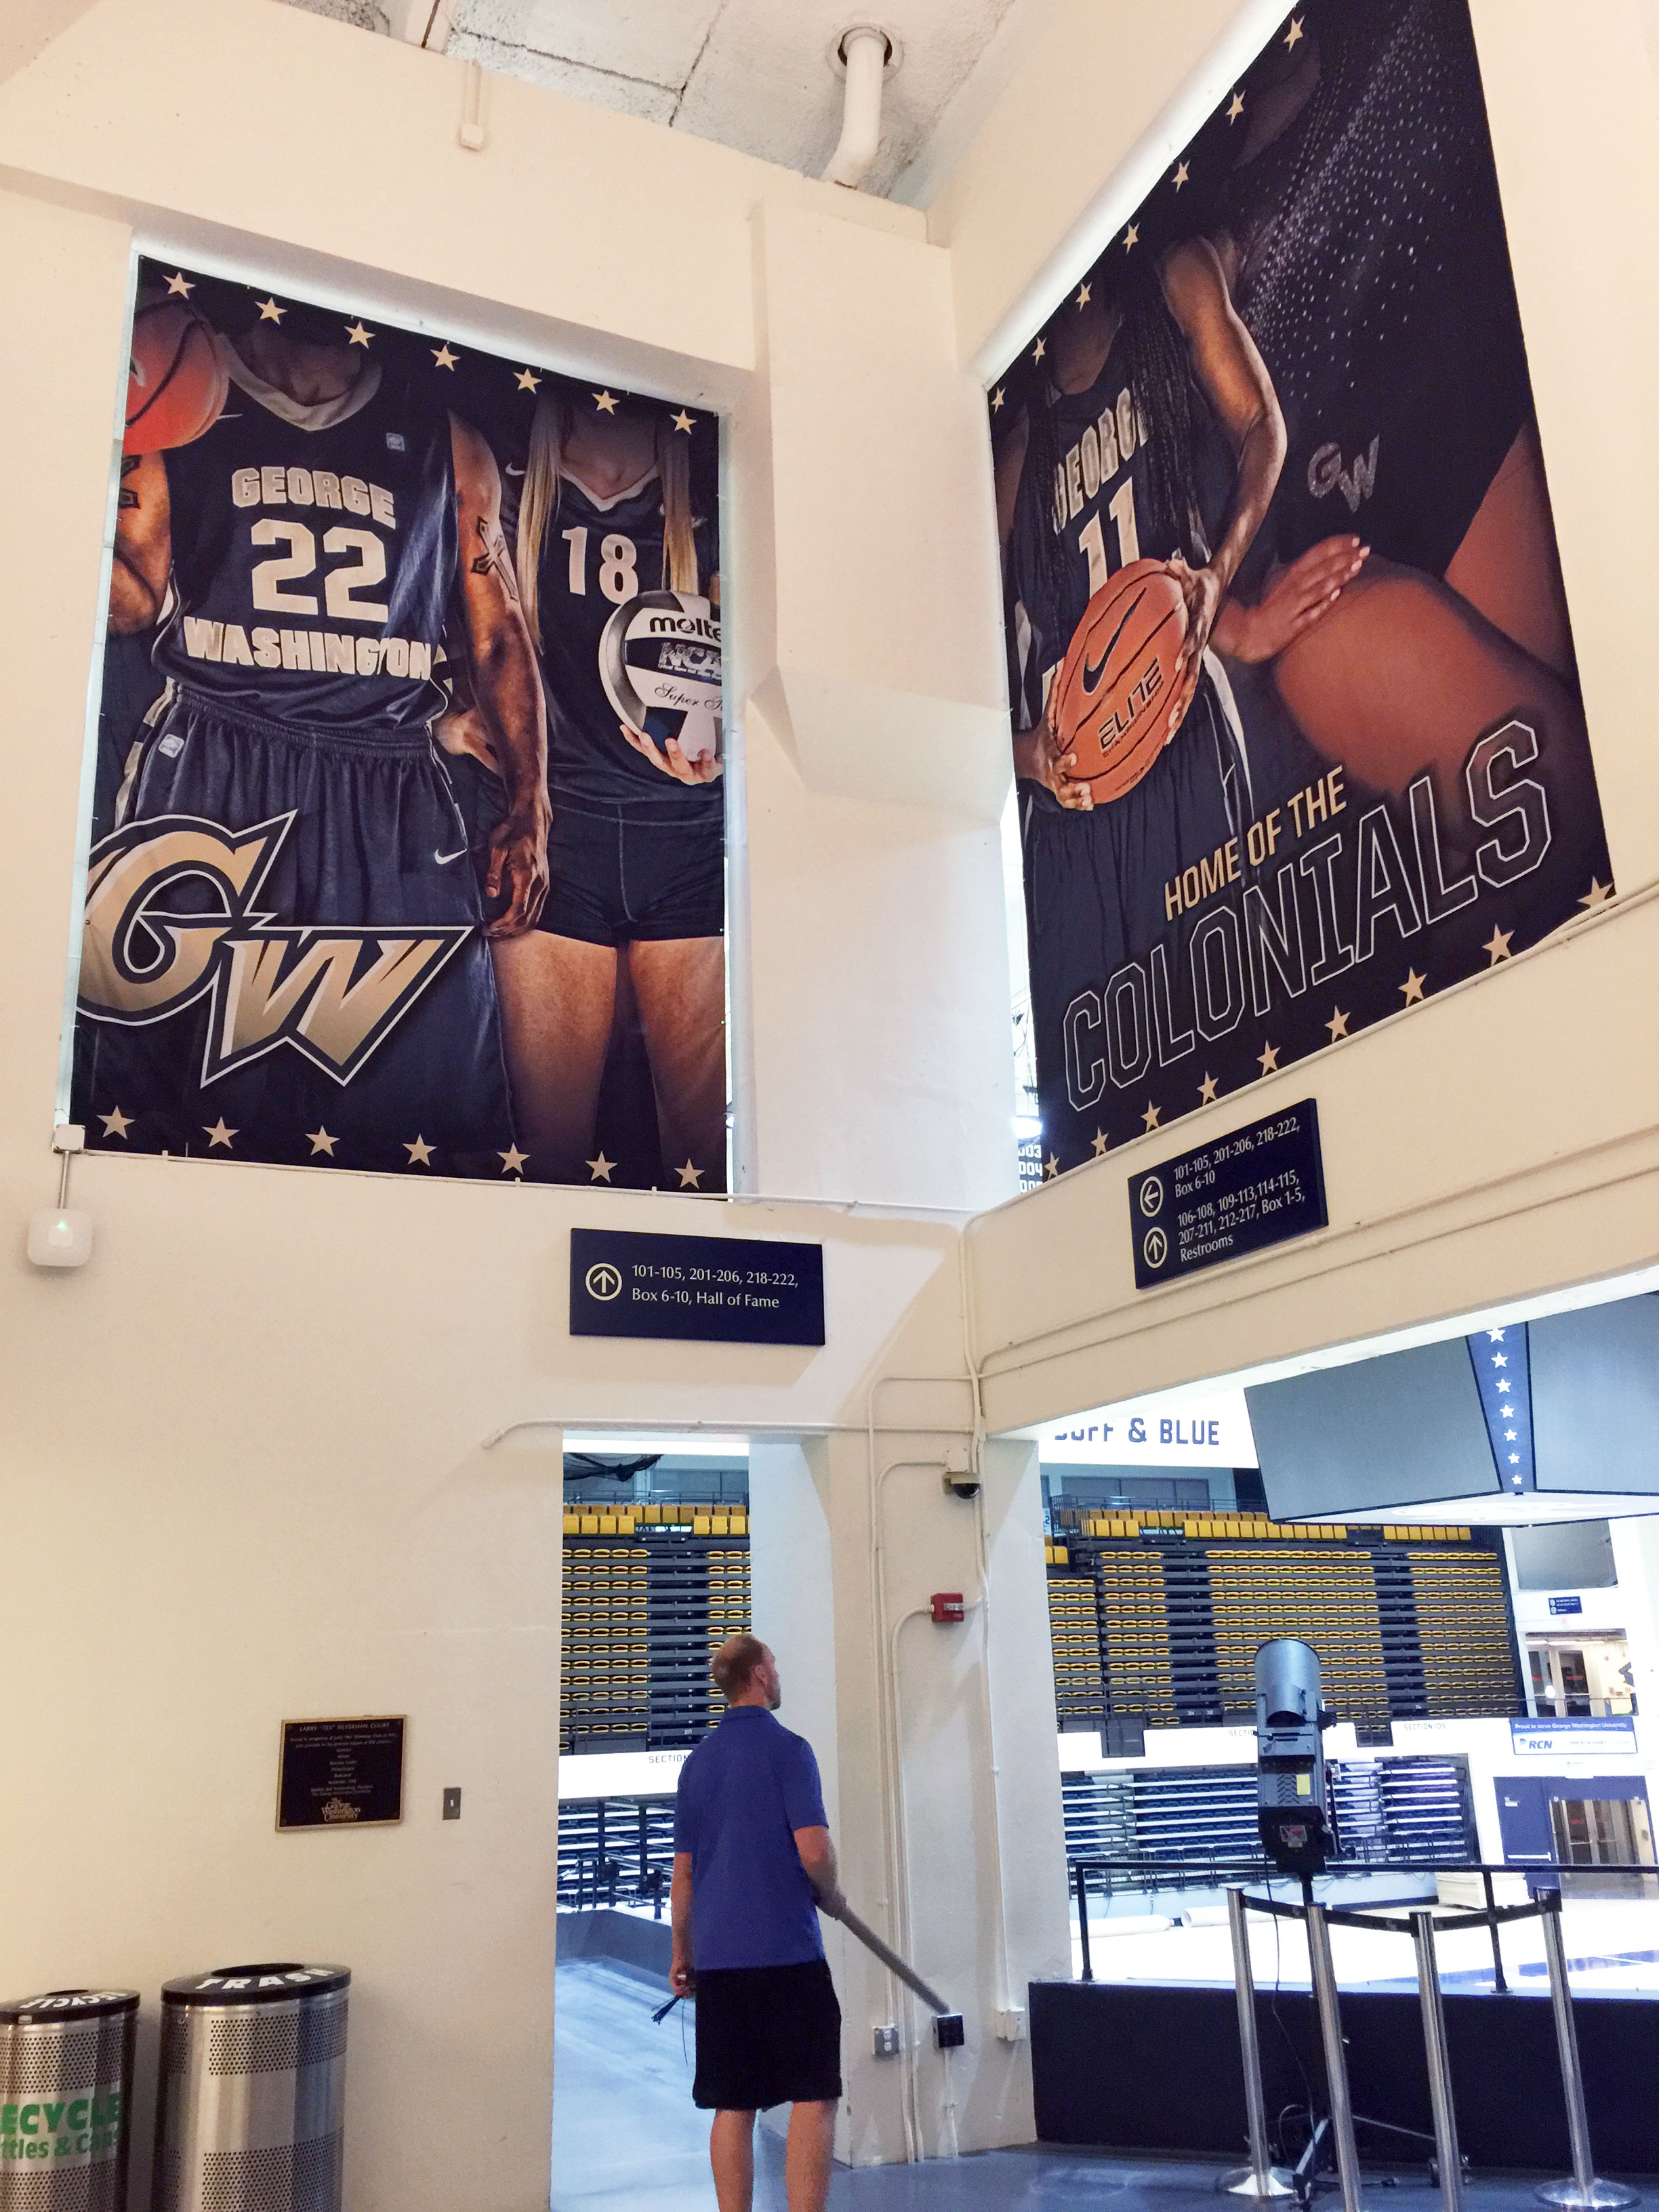 George Washington University Smith Center arena branding large format double sided fabric banners